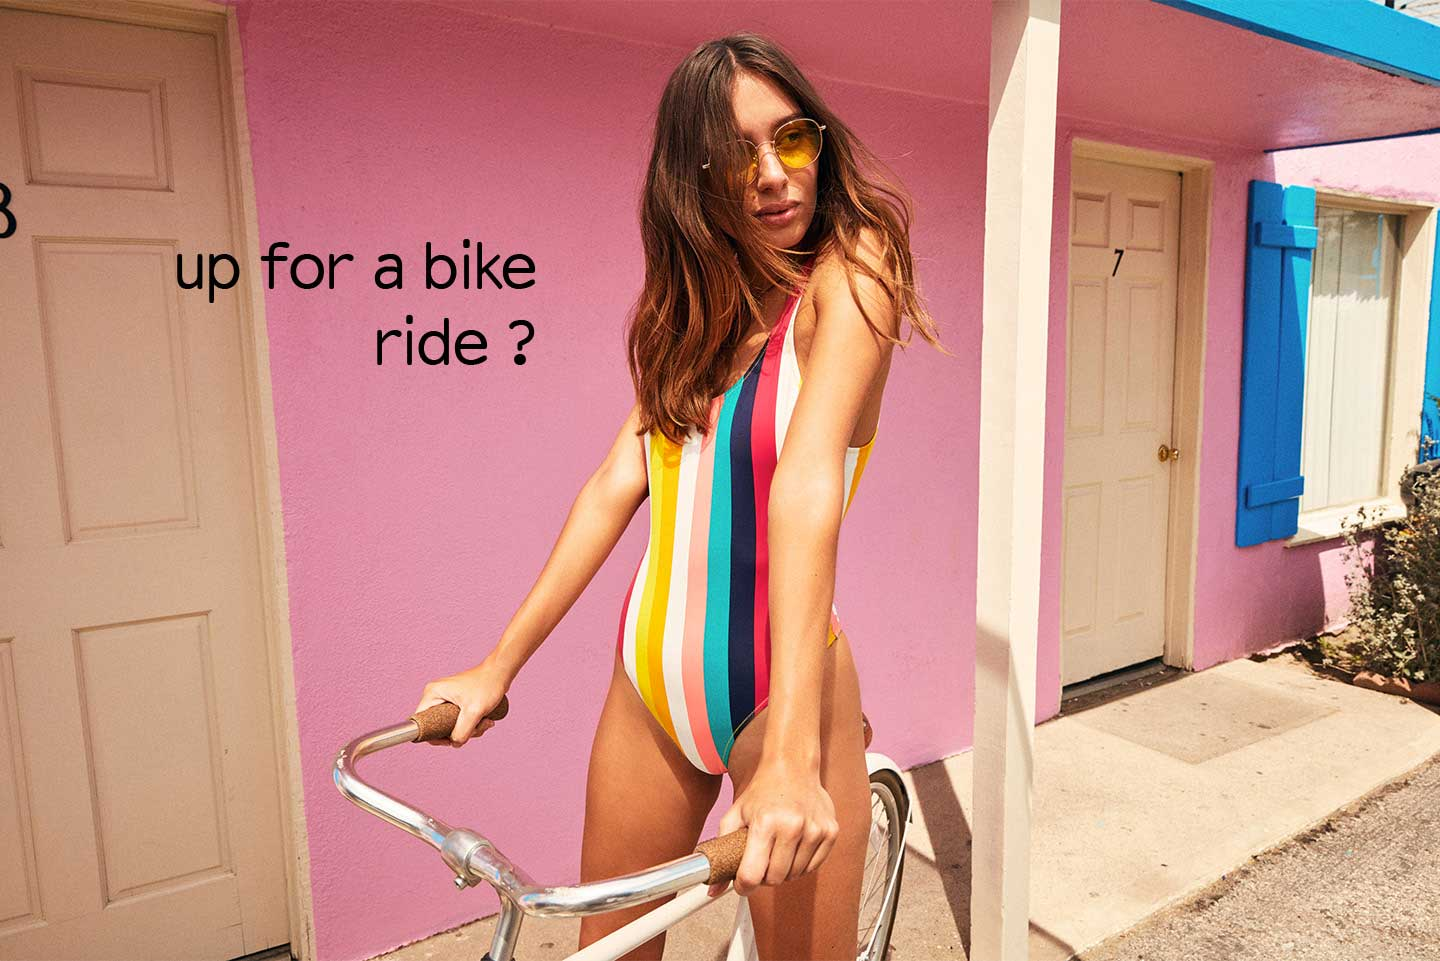 up for a bike ride ?